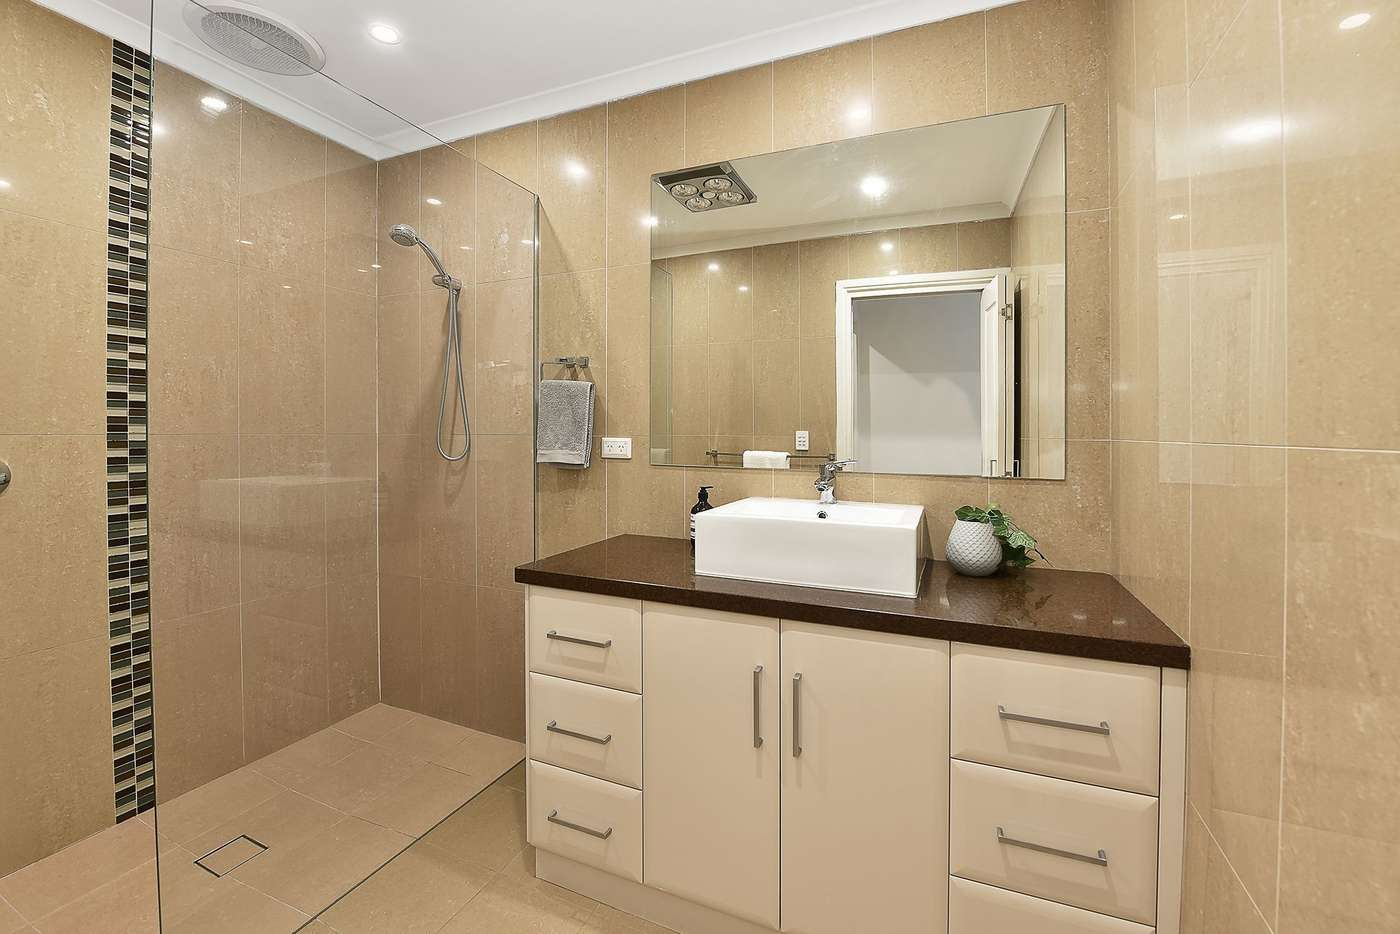 Sixth view of Homely unit listing, 3/15-17 Watt Street, Airport West VIC 3042